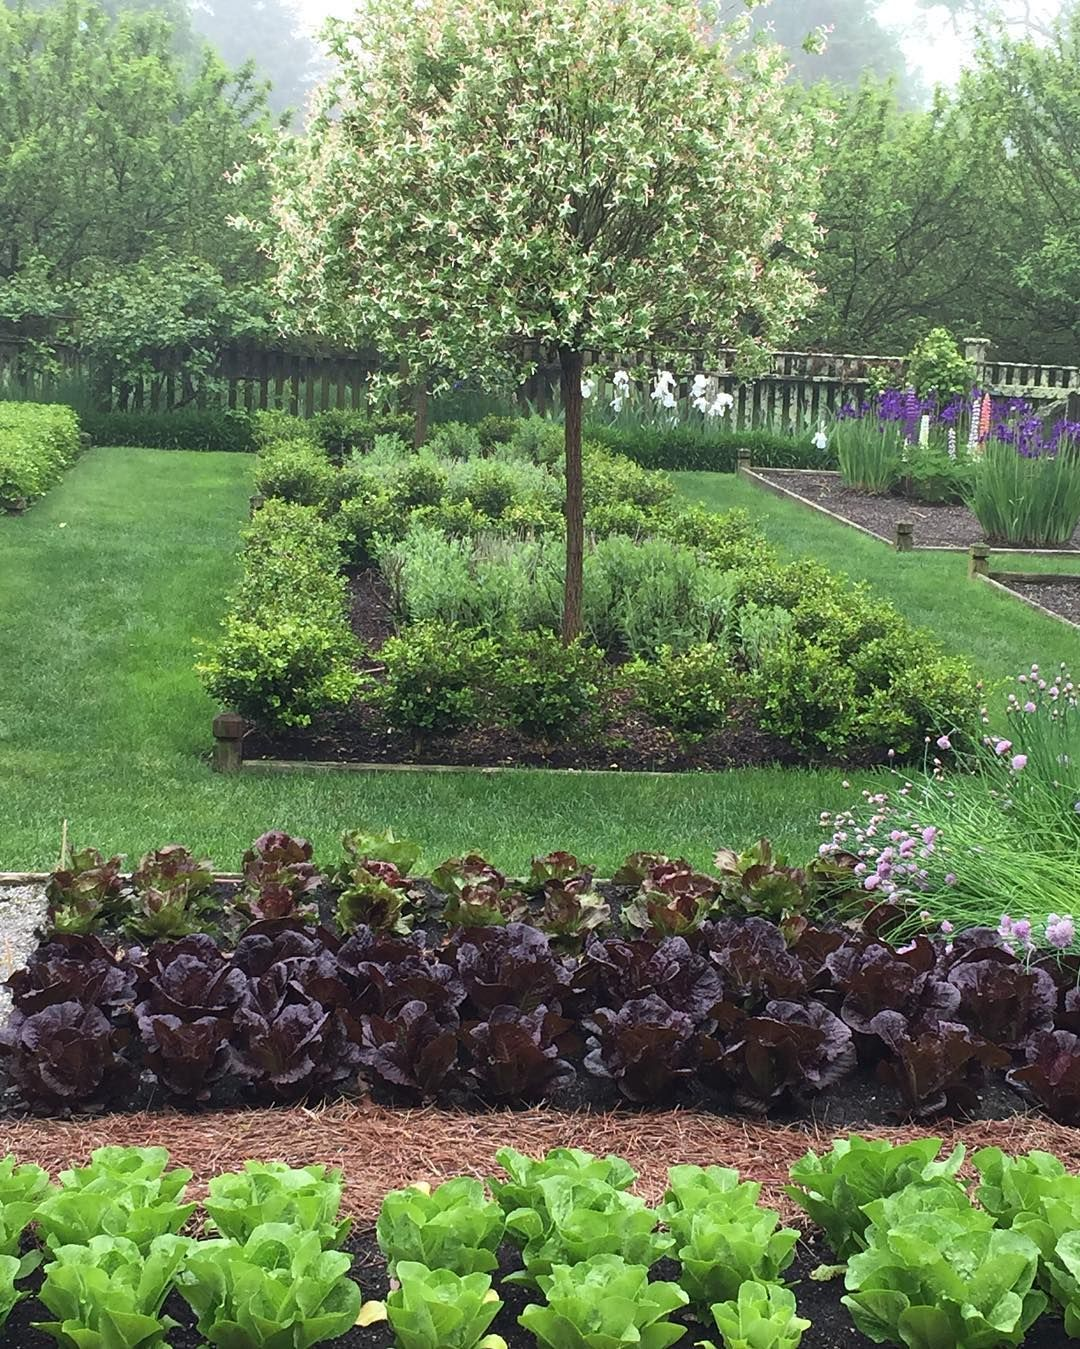 Edible landscaping kitchen garden via ina garten instagram jardin potager bauerngarten for Jardin 00 garden